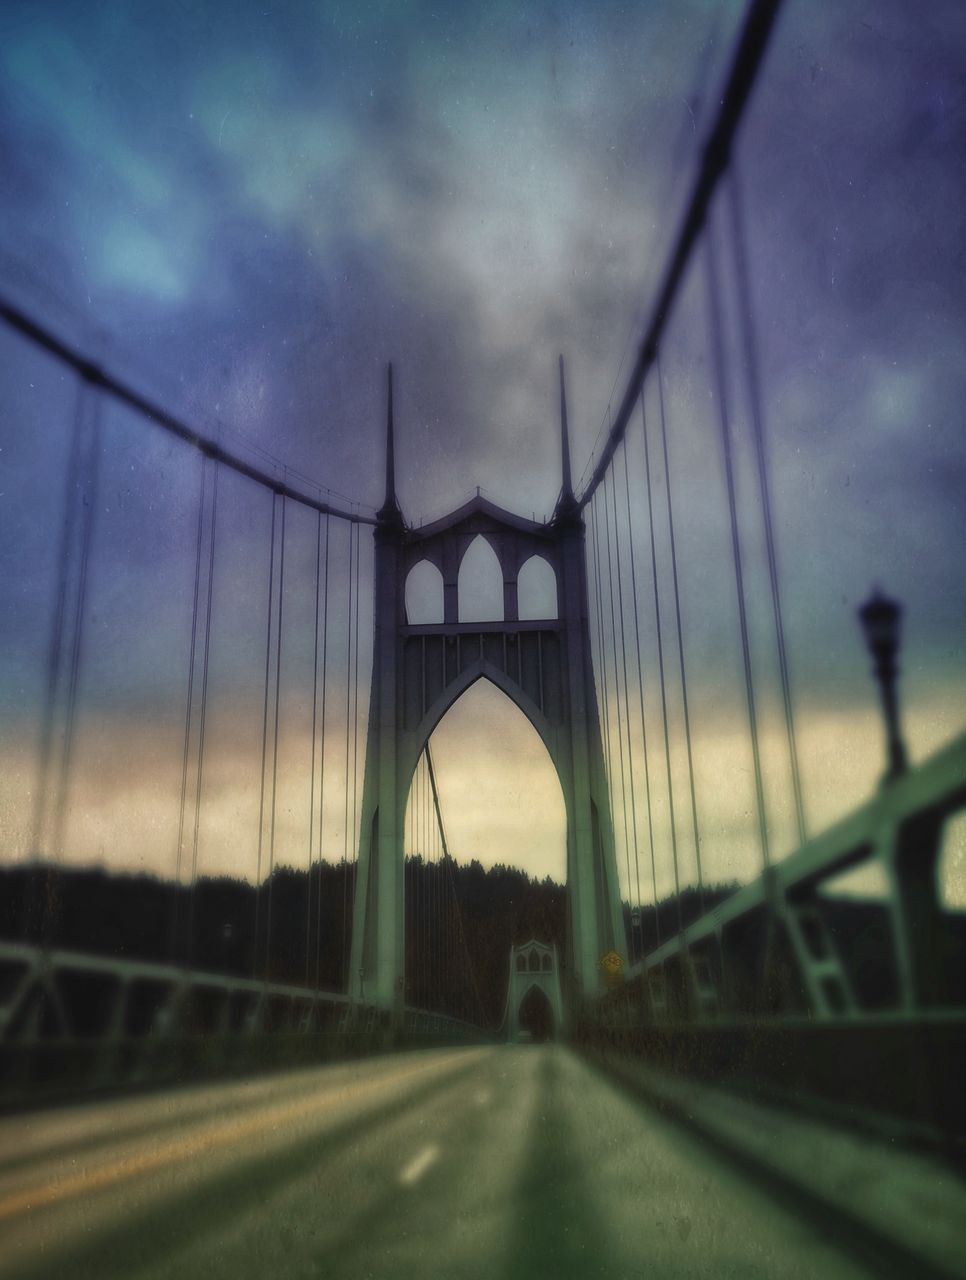 bridge - man made structure, connection, suspension bridge, engineering, transportation, architecture, sky, road, built structure, travel, bridge, travel destinations, outdoors, the way forward, cloud - sky, no people, day, chain bridge, city